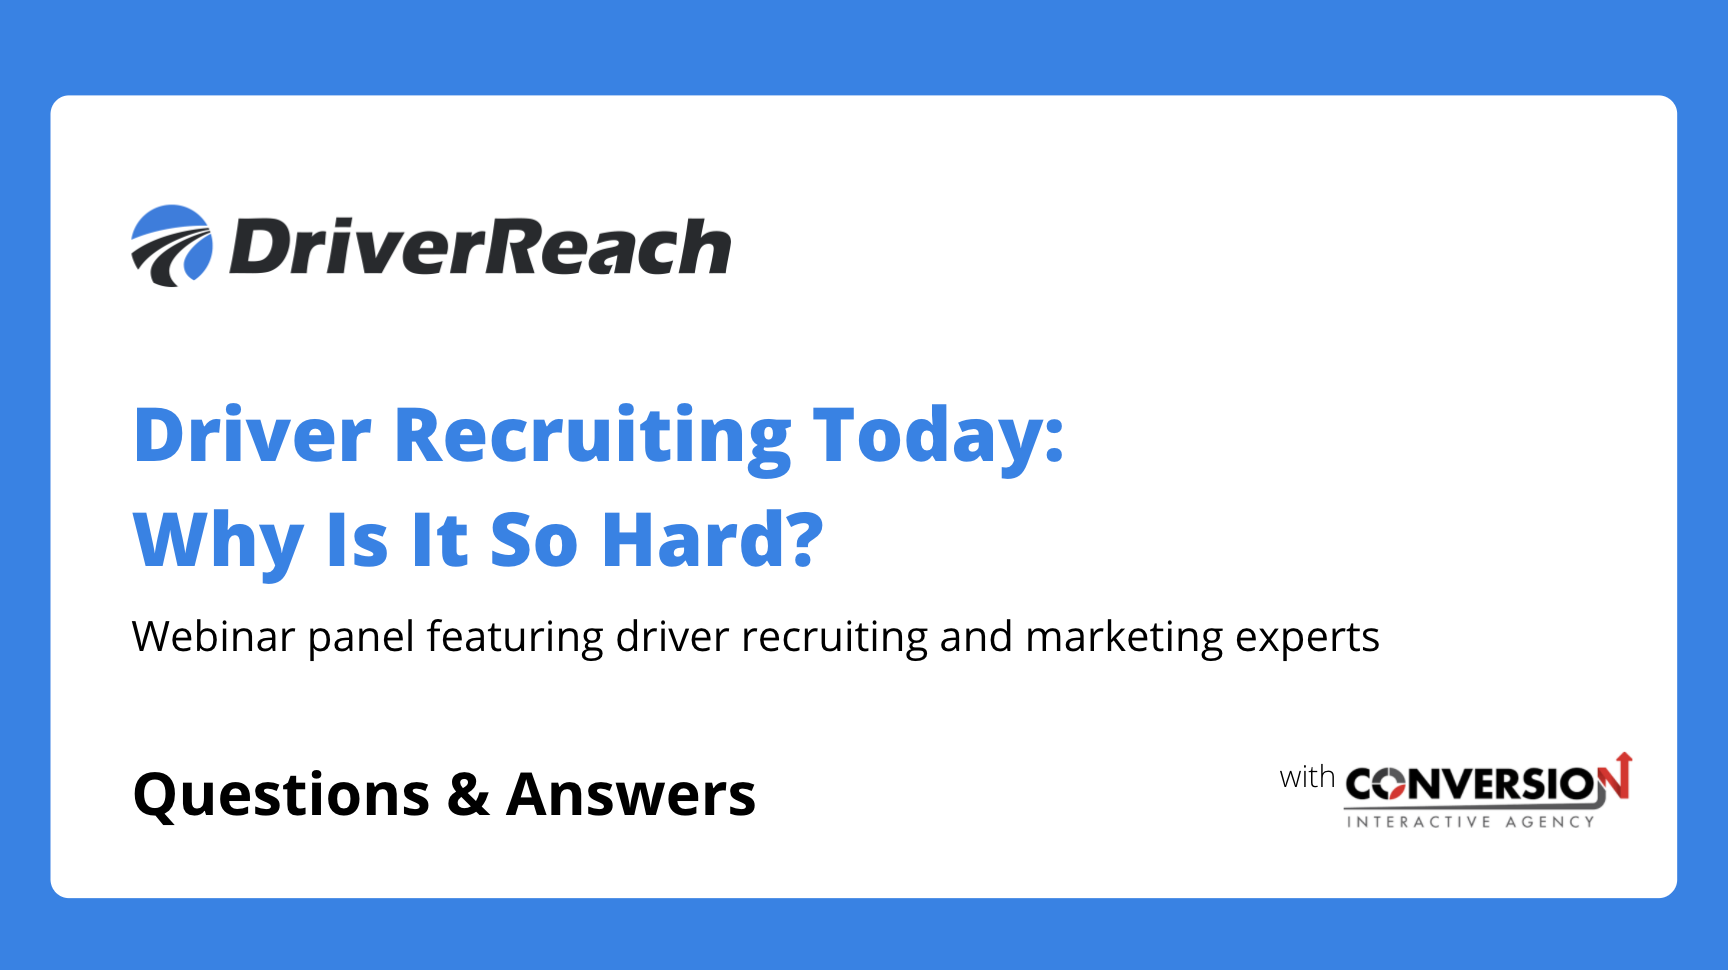 Webinar Q&A Part I: Driver Recruiting Today: Why Is It So Hard?